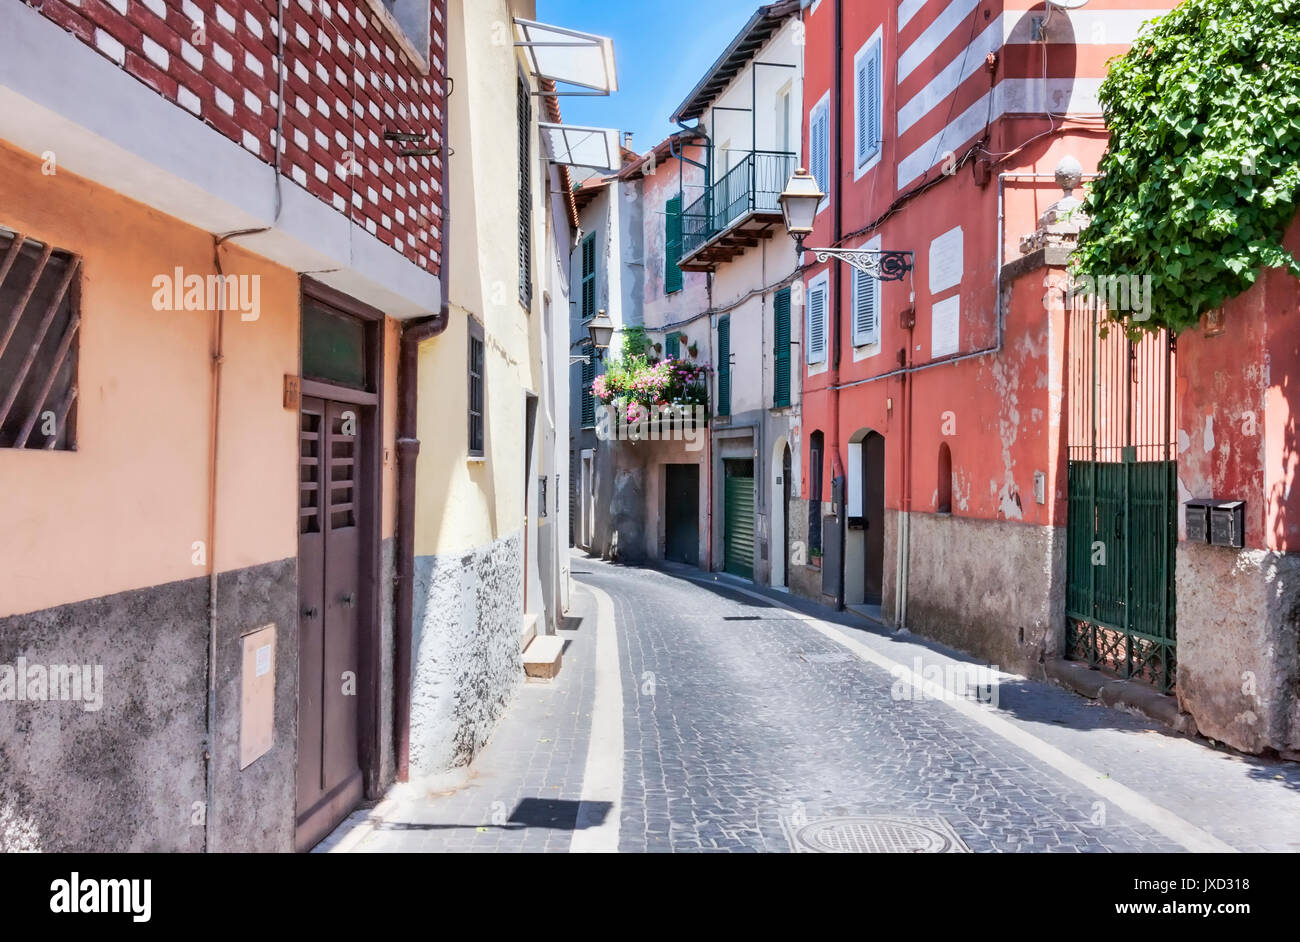 Village of Rocca di Papa main street view - Rome - Italy - Stock Image